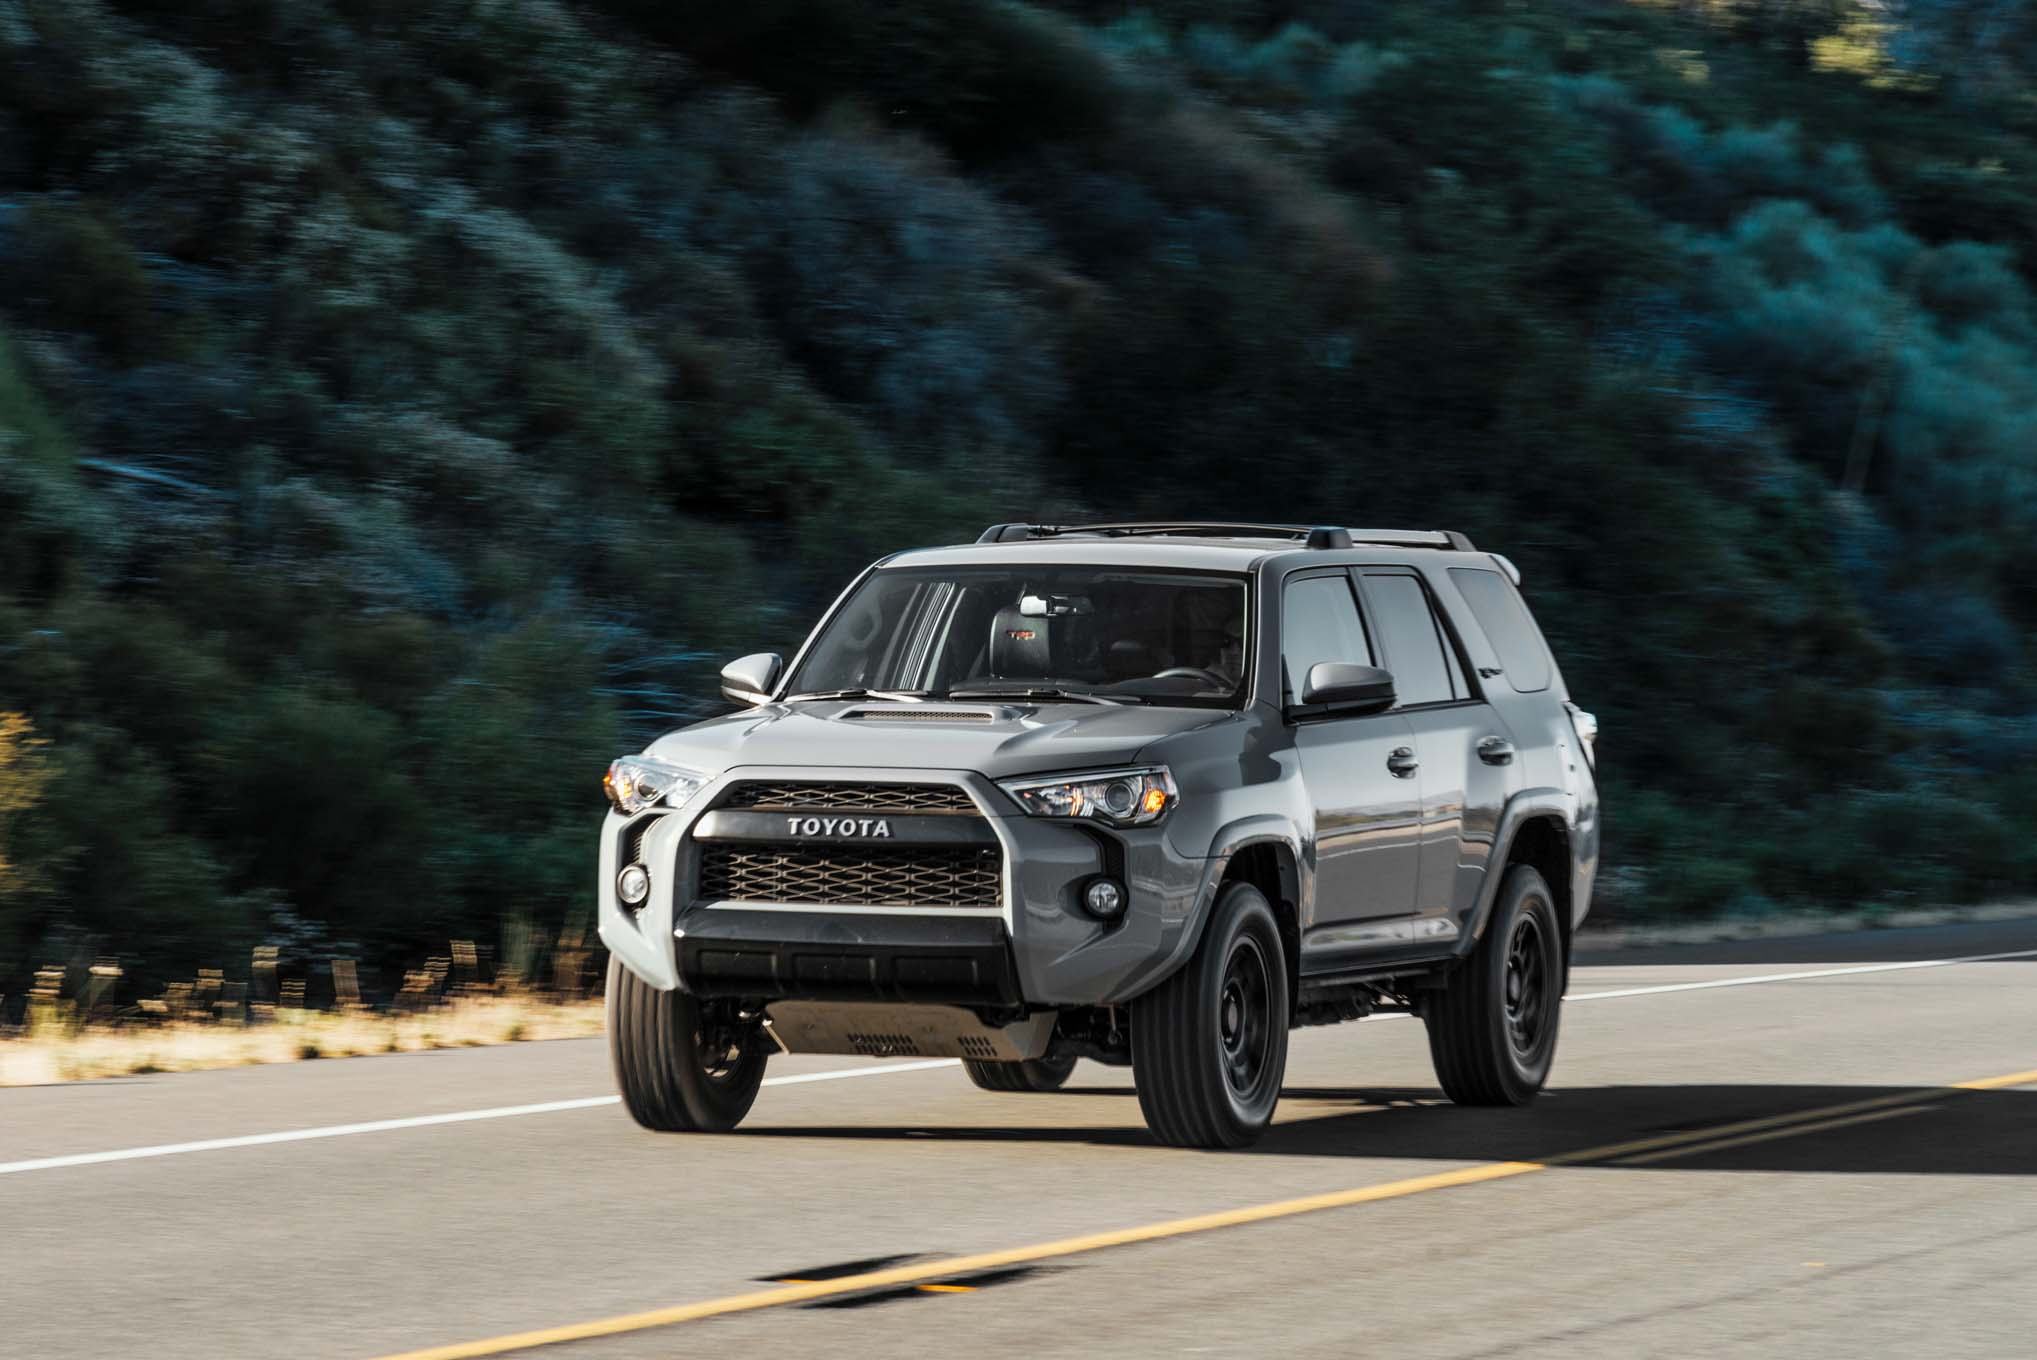 2017 Toyota 4runner Trd Pro Front End In Motion 3 Julio 2018 Miguel Cortina